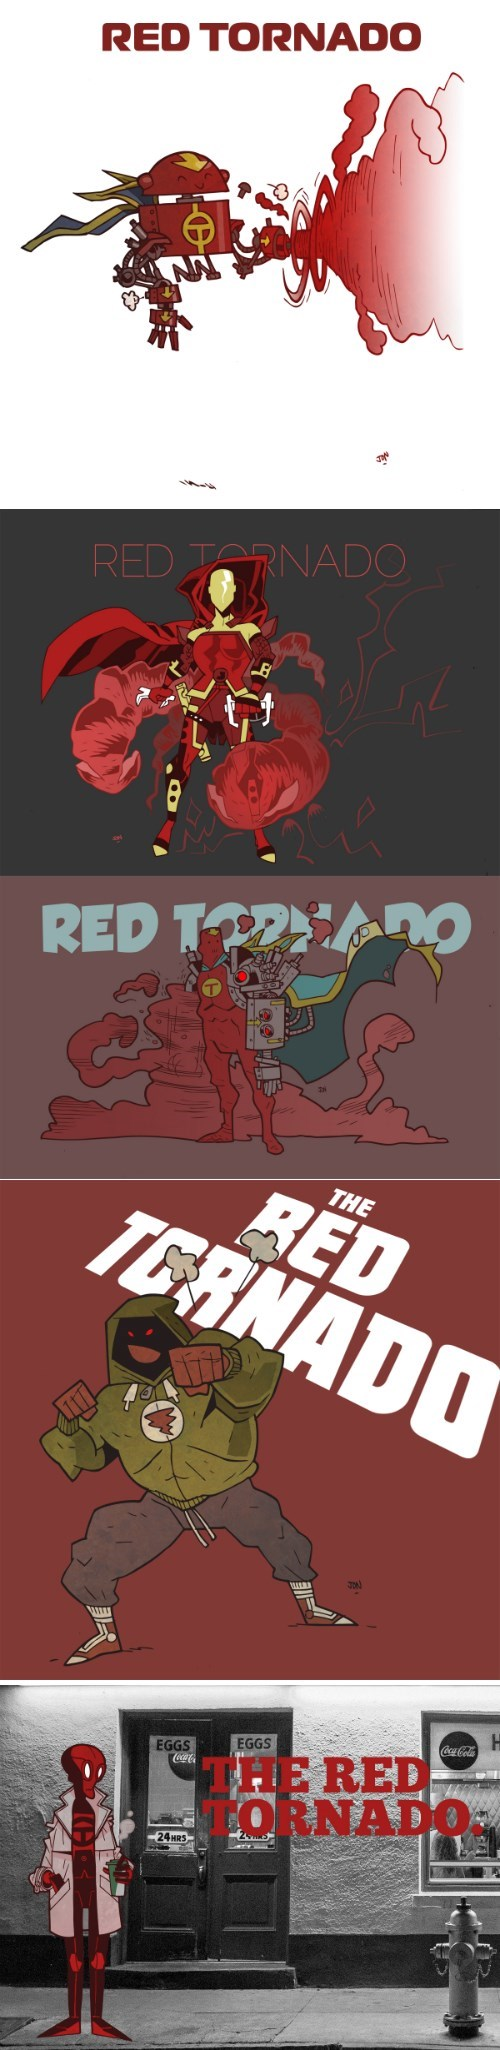 DC red tornado comics Fan Art - 7819666432